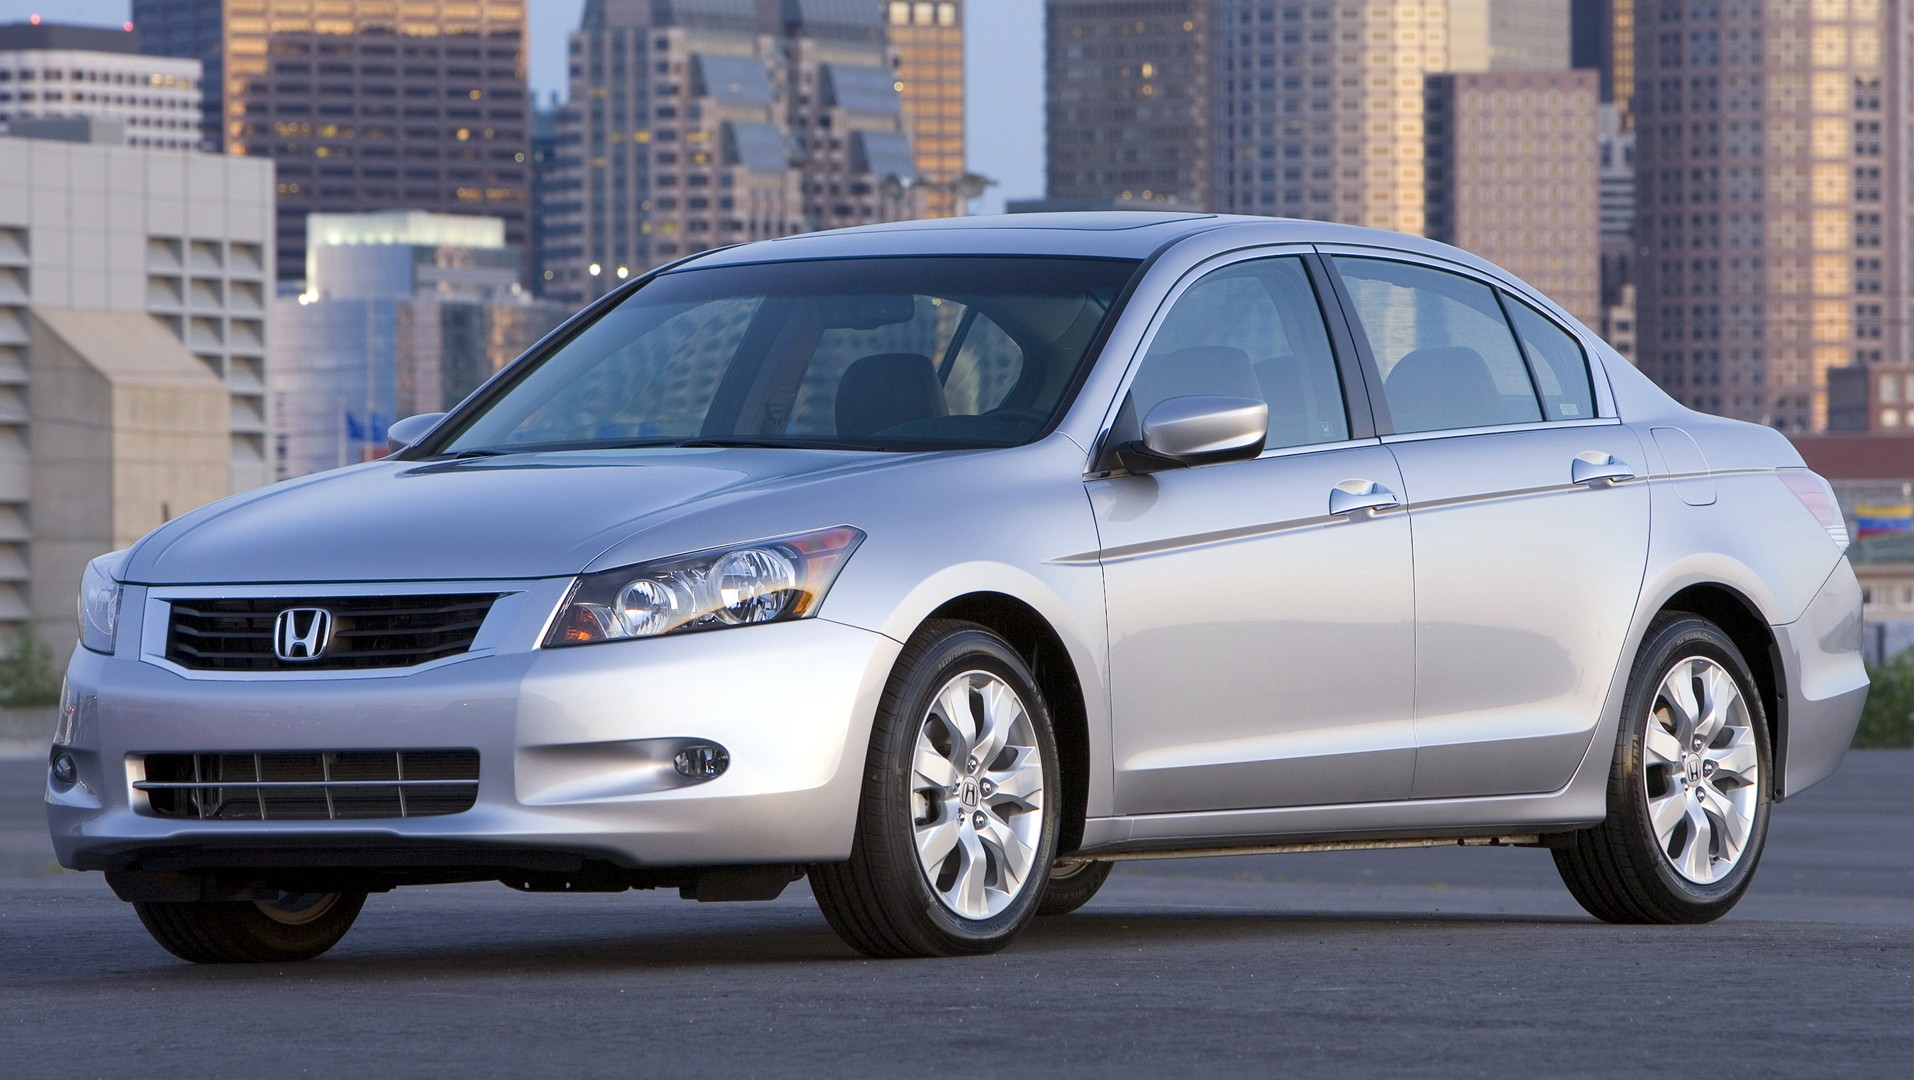 honda recalls accord and cr v in us over airbag issues. Black Bedroom Furniture Sets. Home Design Ideas